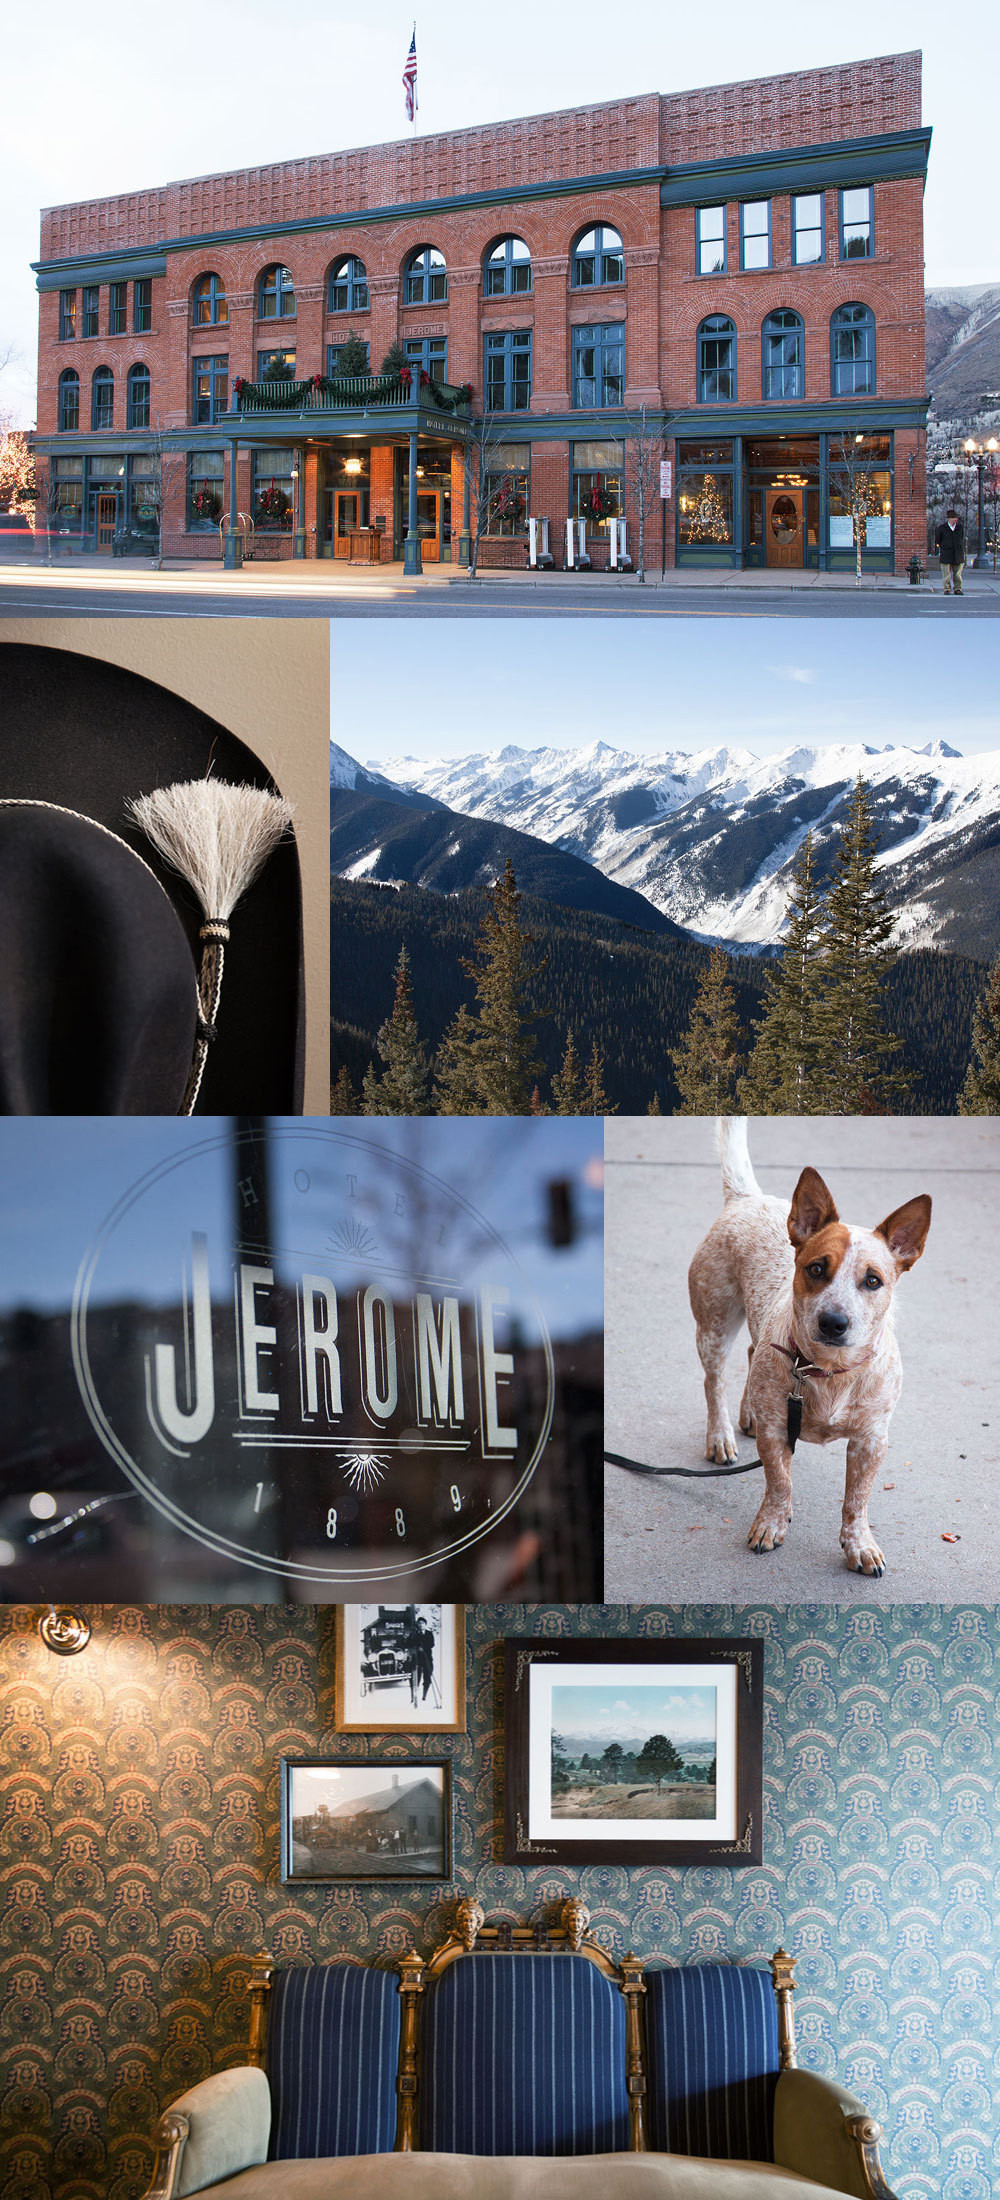 Clockwise from top: The hotel's Victorian façade. Rocky Mountain views. A furry neighbor. An antique settee in an elegantly wallpapered hallway. Hotel Jerome's logo. The hat worn by the hotel's bellhops.